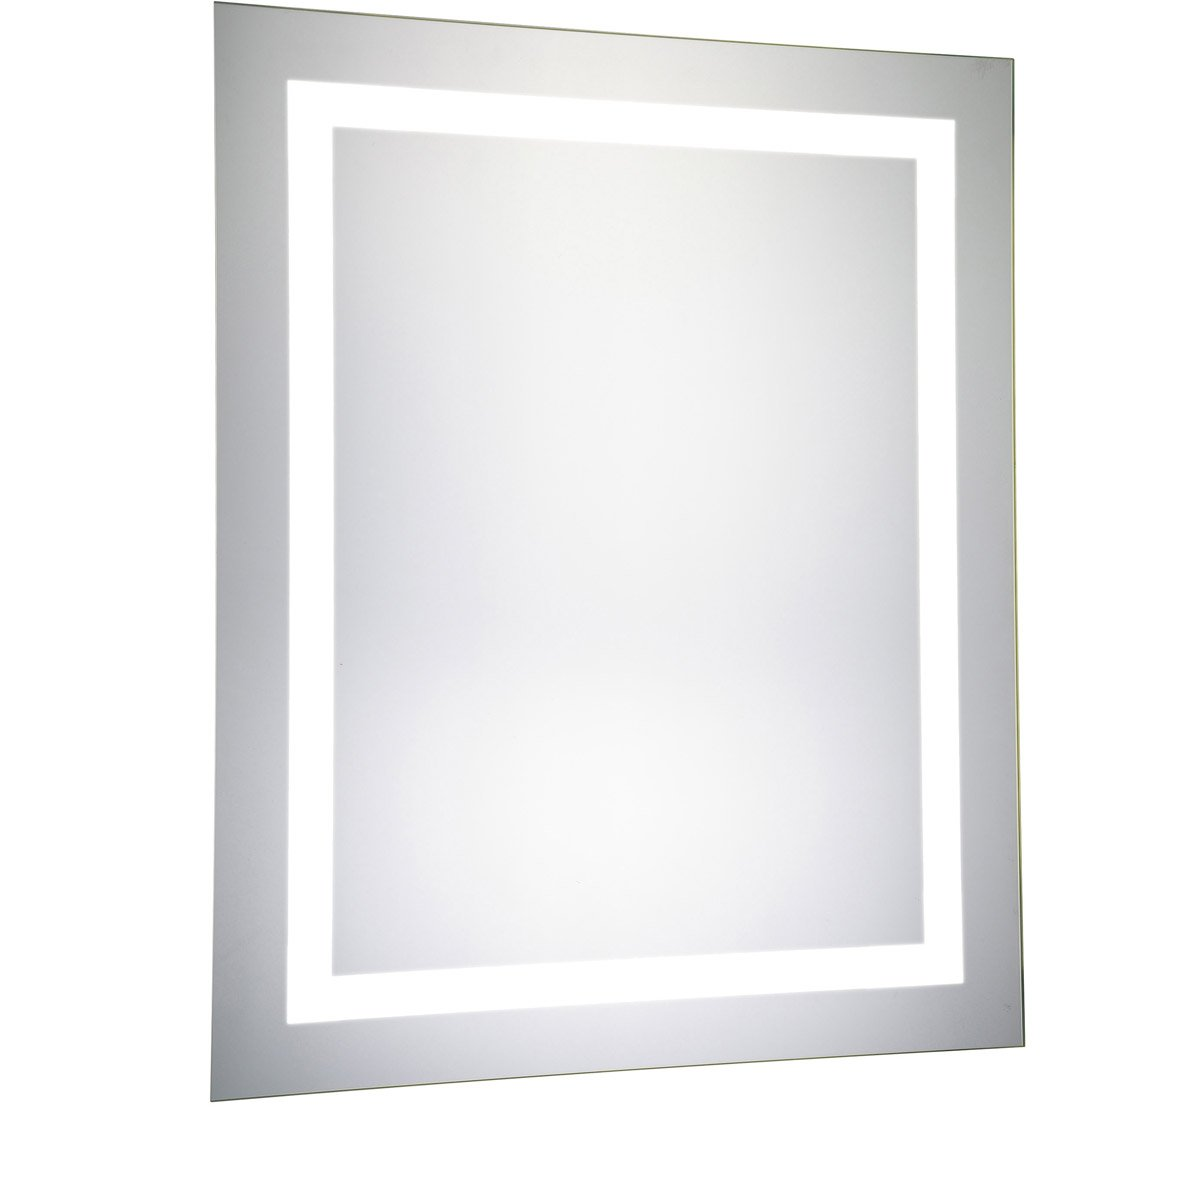 Nova 30 X 24 Hardwired Glossy White Led Wall Mirror (Mre-6003) Led Mirror